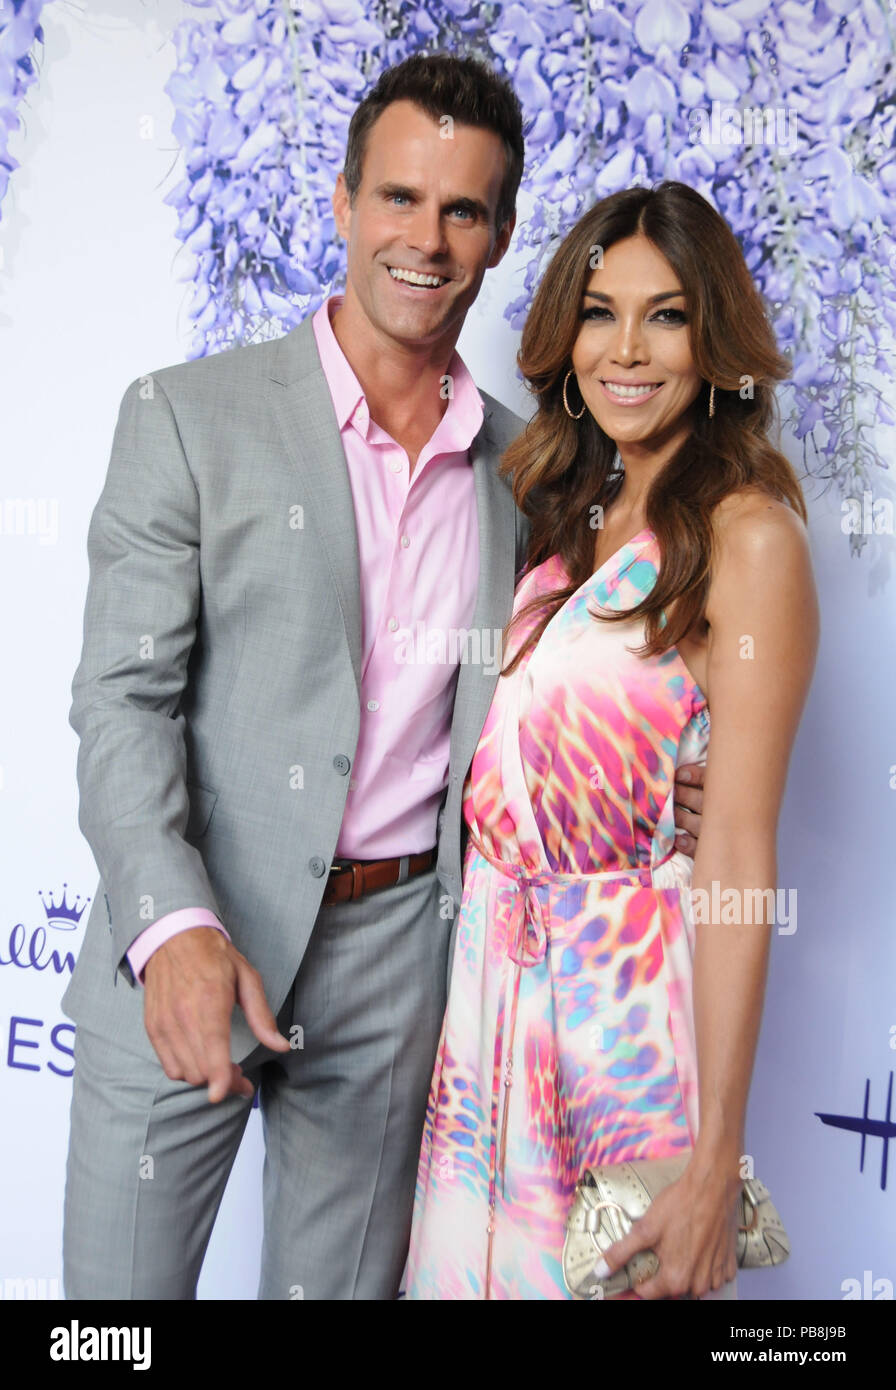 Cameron Mathison Wife Vanessa Mathison High Resolution Stock Photography And Images Alamy She was born on 19th april in puerto rico. https www alamy com beverly hills california usa 26th july 2018 actor cameron mathison and wife vanessa arevalo attend hallmark channel and hallmark movies mysteries summer 2018 television critics association press tour event on july 26 2018 at private residence in beverly hills california photo by barry kingalamy live news image213475623 html